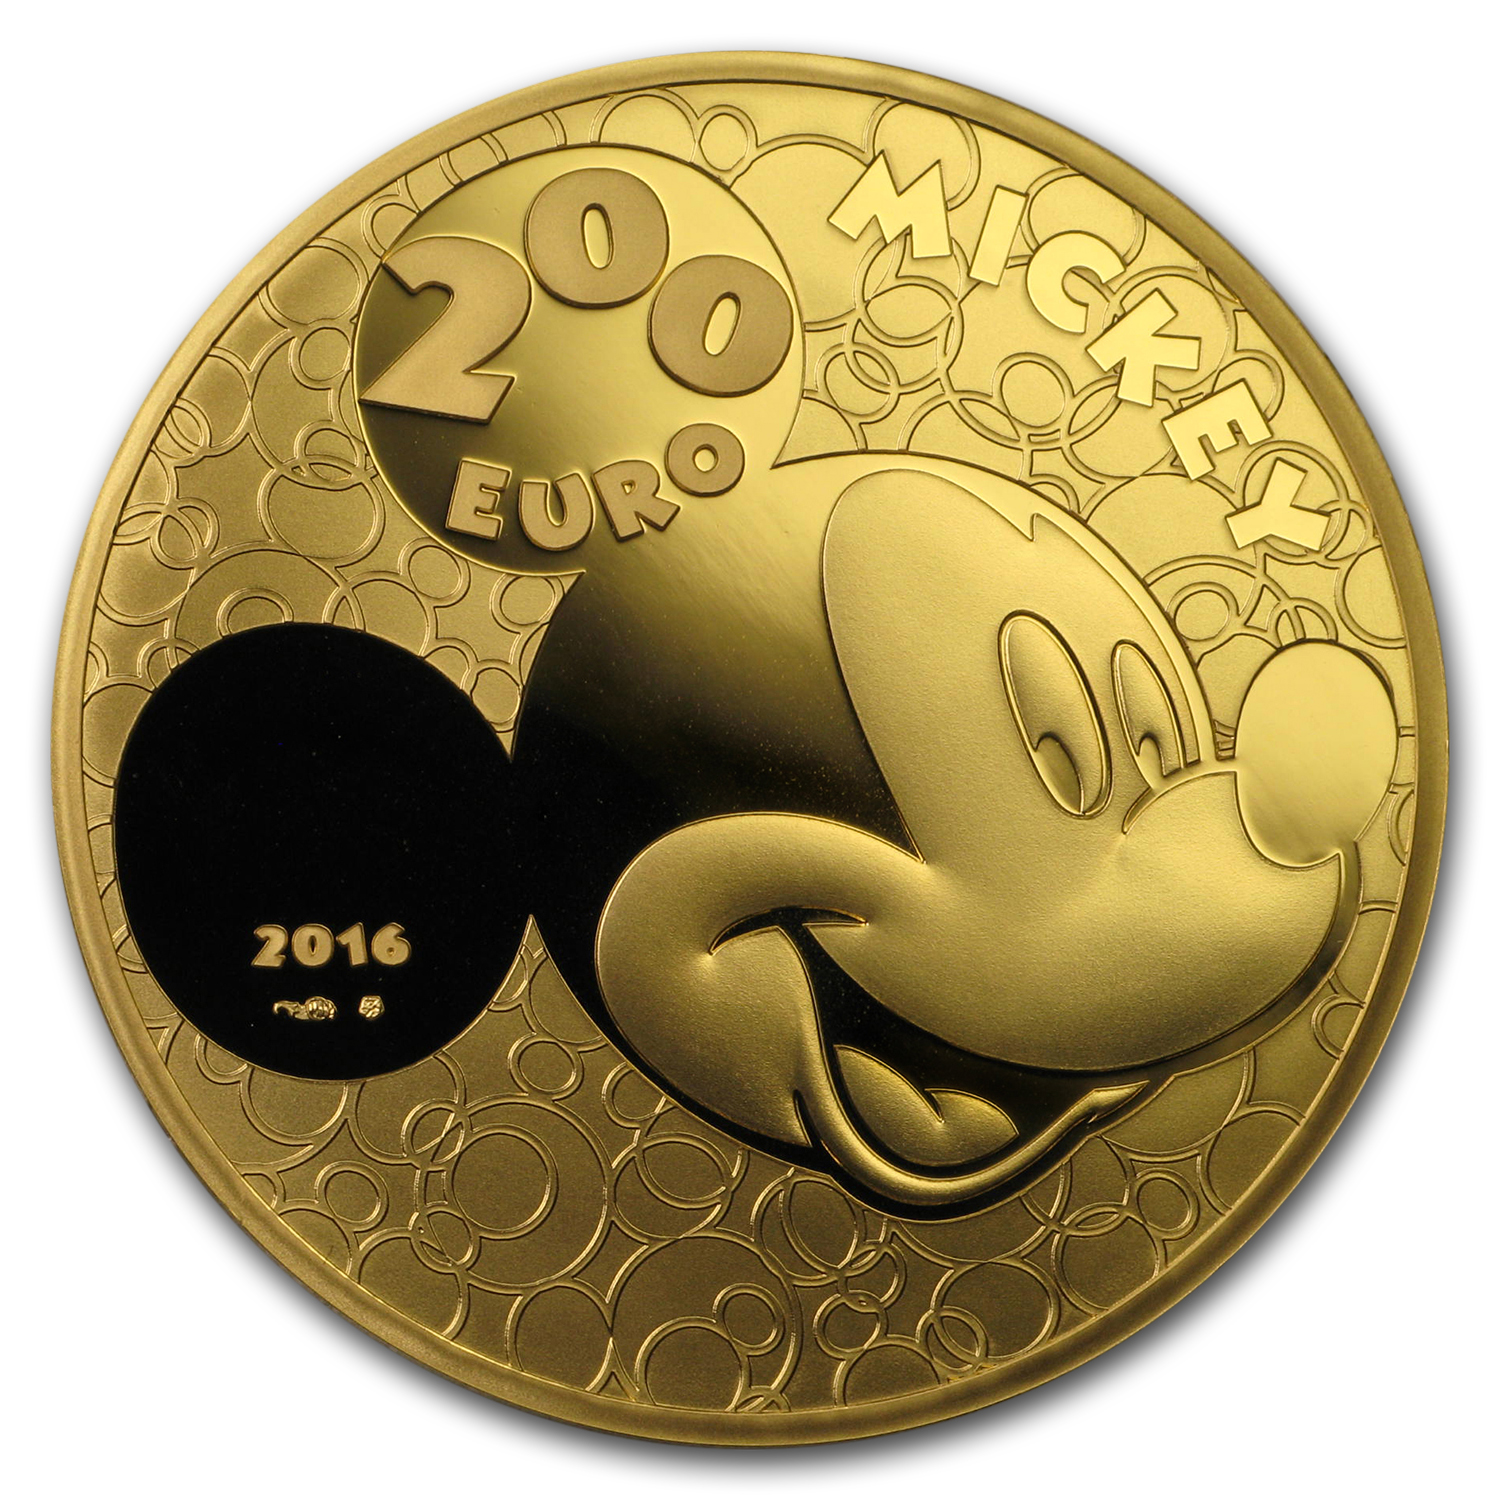 2016 France 1 oz Proof Gold Mickey Through the Ages